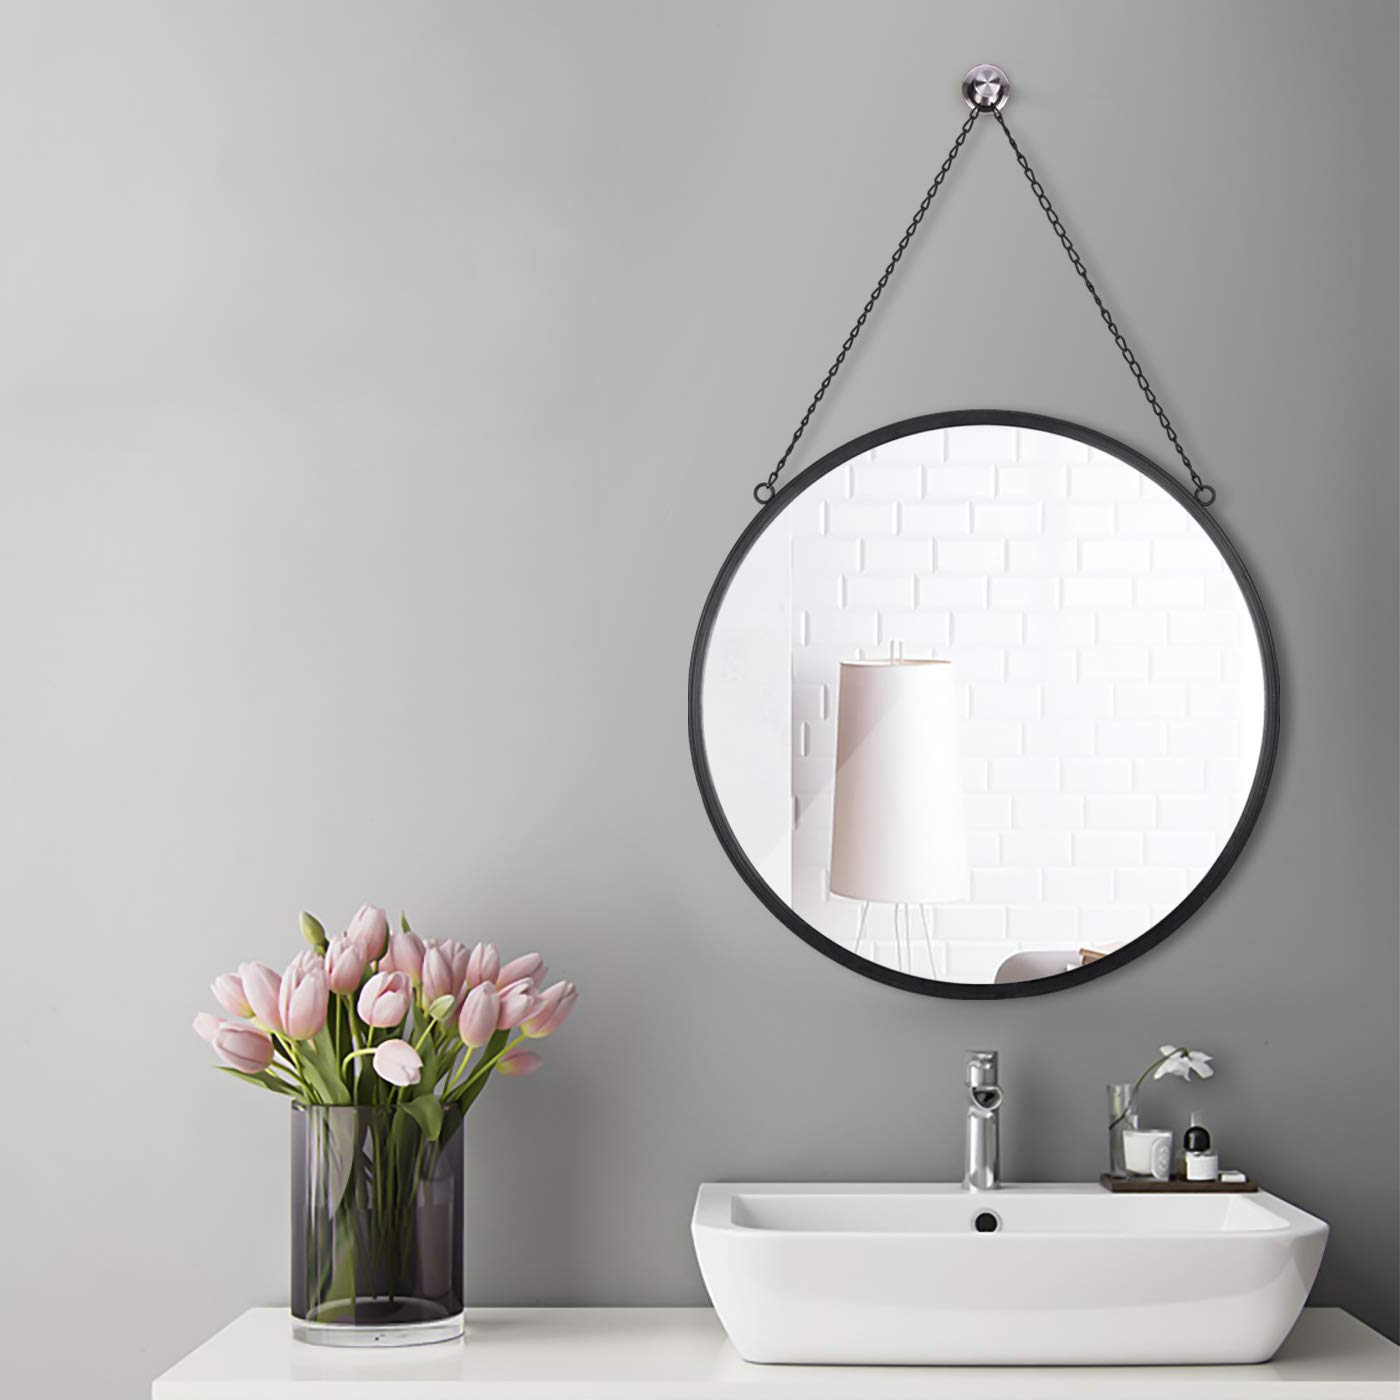 """Fashionable Standard Wall Mirrors With Regard To Plinrise Round Wall Mirror, Modern Metal Framed Mirror, Decorative Hanging  Vanity Mirror For Bedroom, Bathroom And Living Room, Size 20"""", Black (View 6 of 20)"""